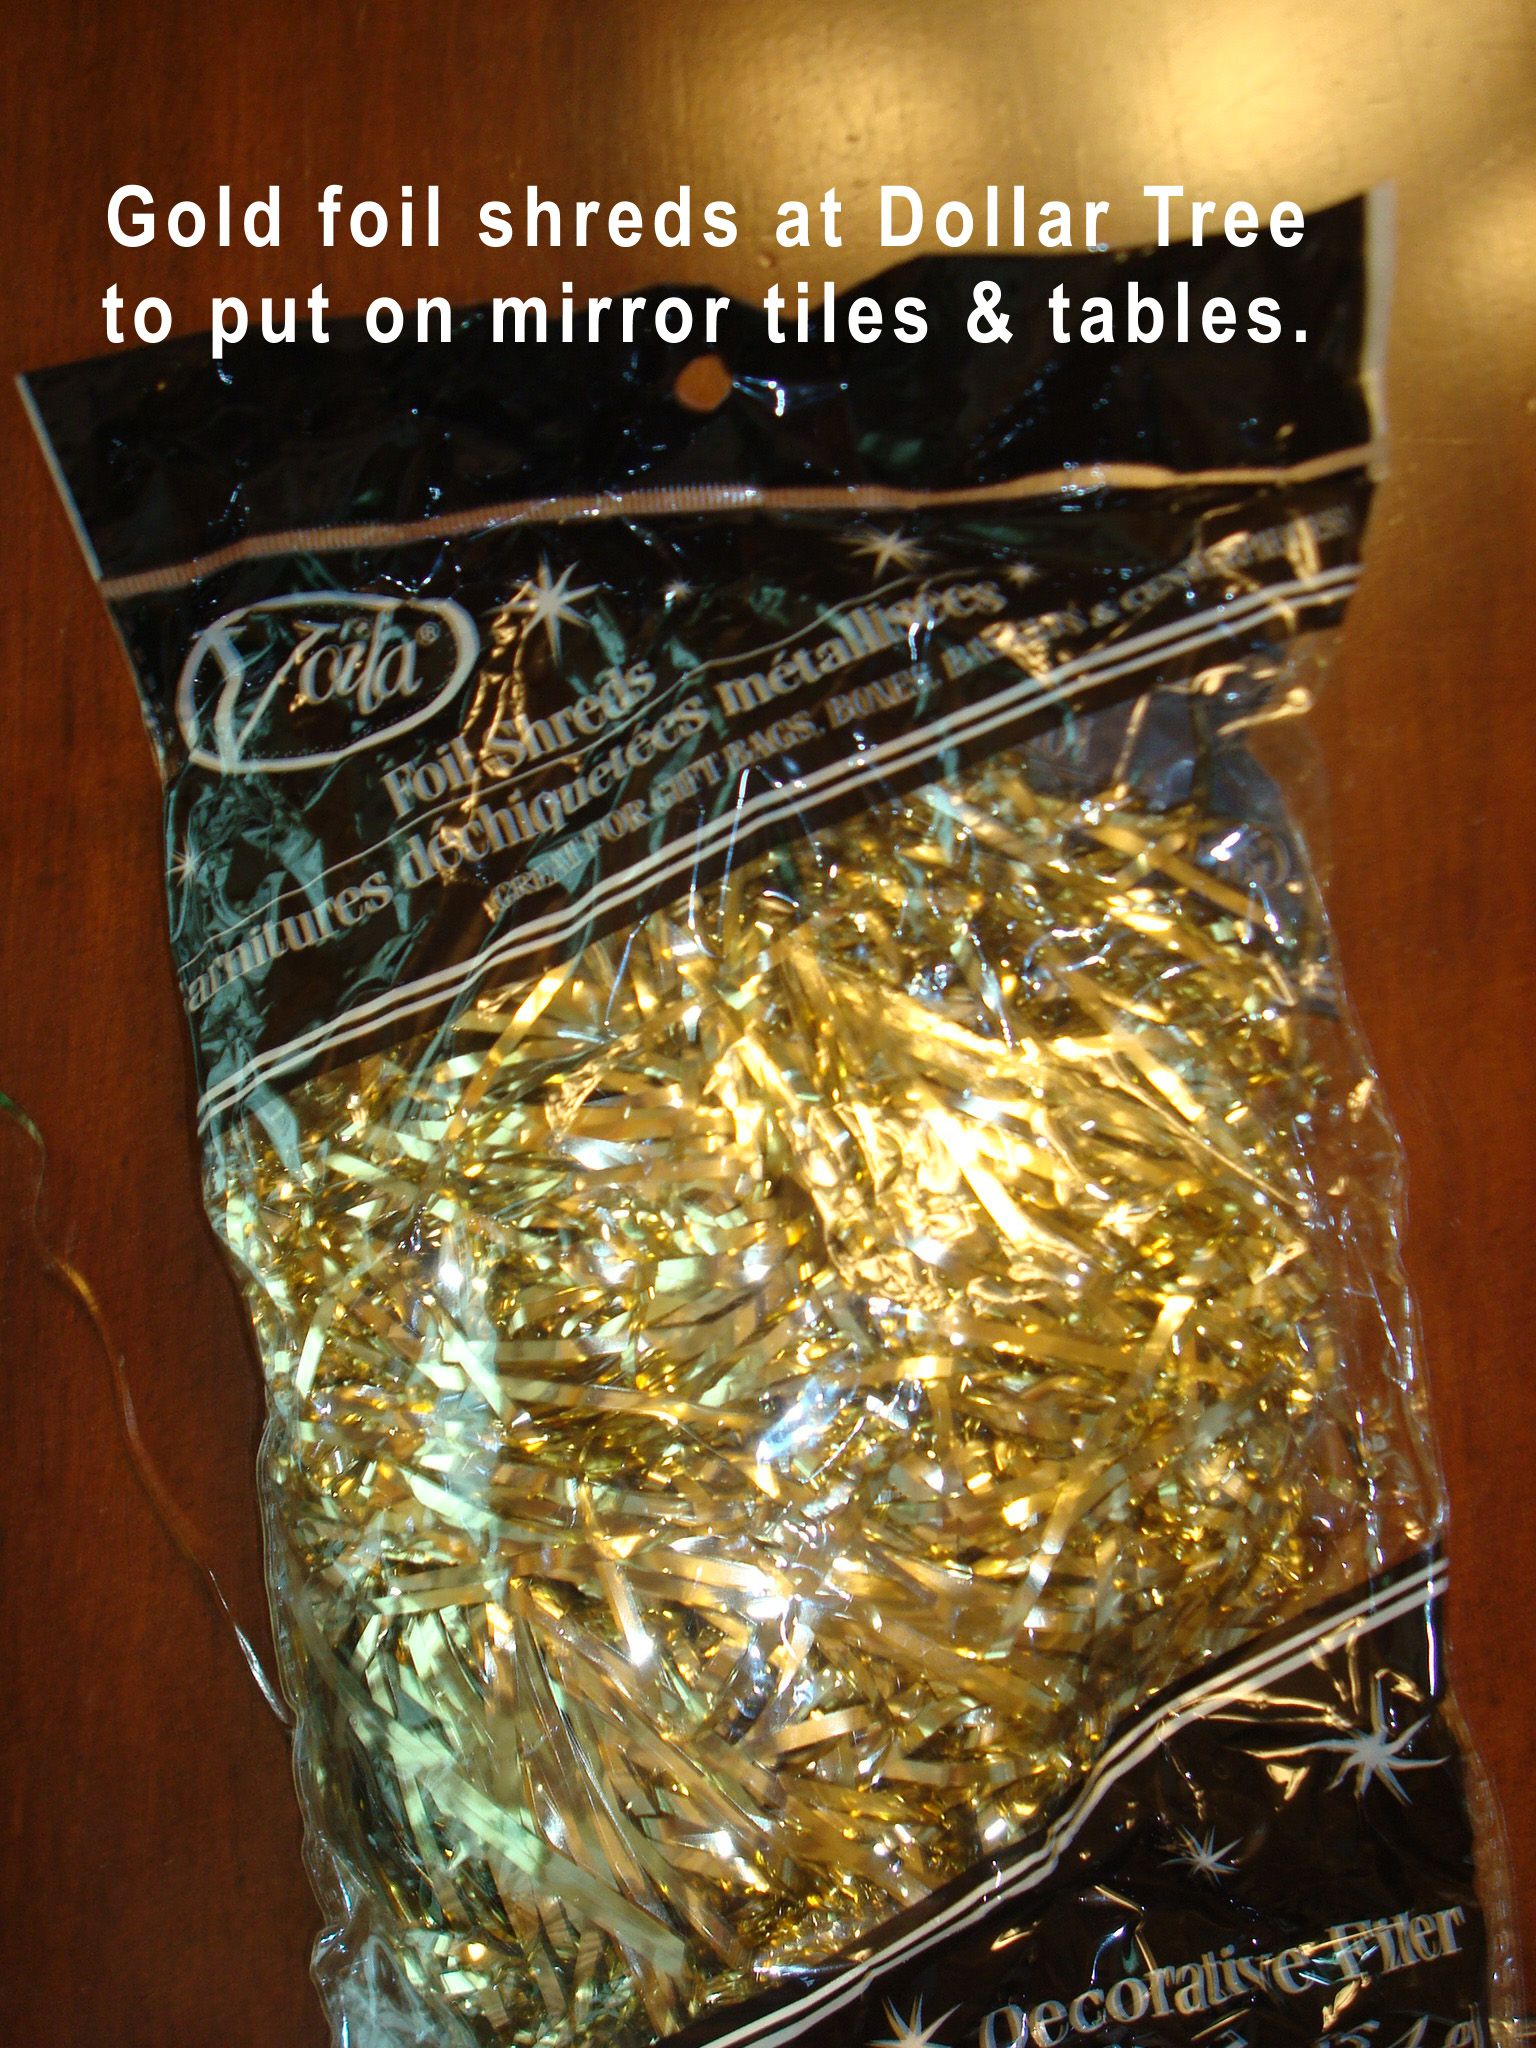 Dollar tree gold foil shreds were scattered on centerpiece